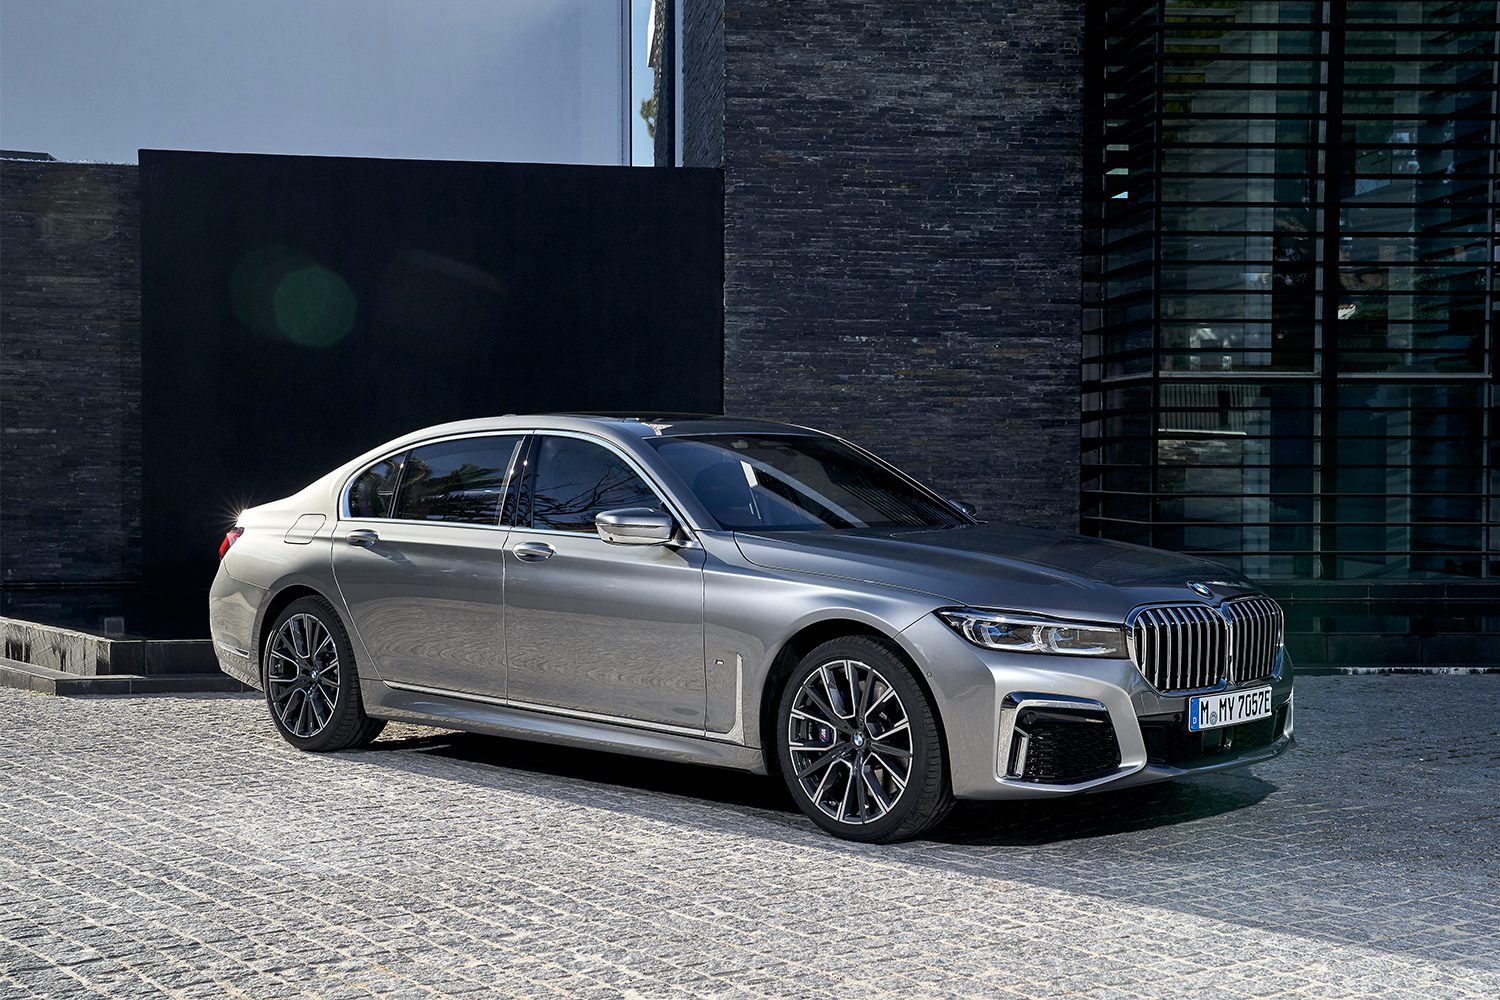 All Eyes On Bmw 7 Series Straight From The Future